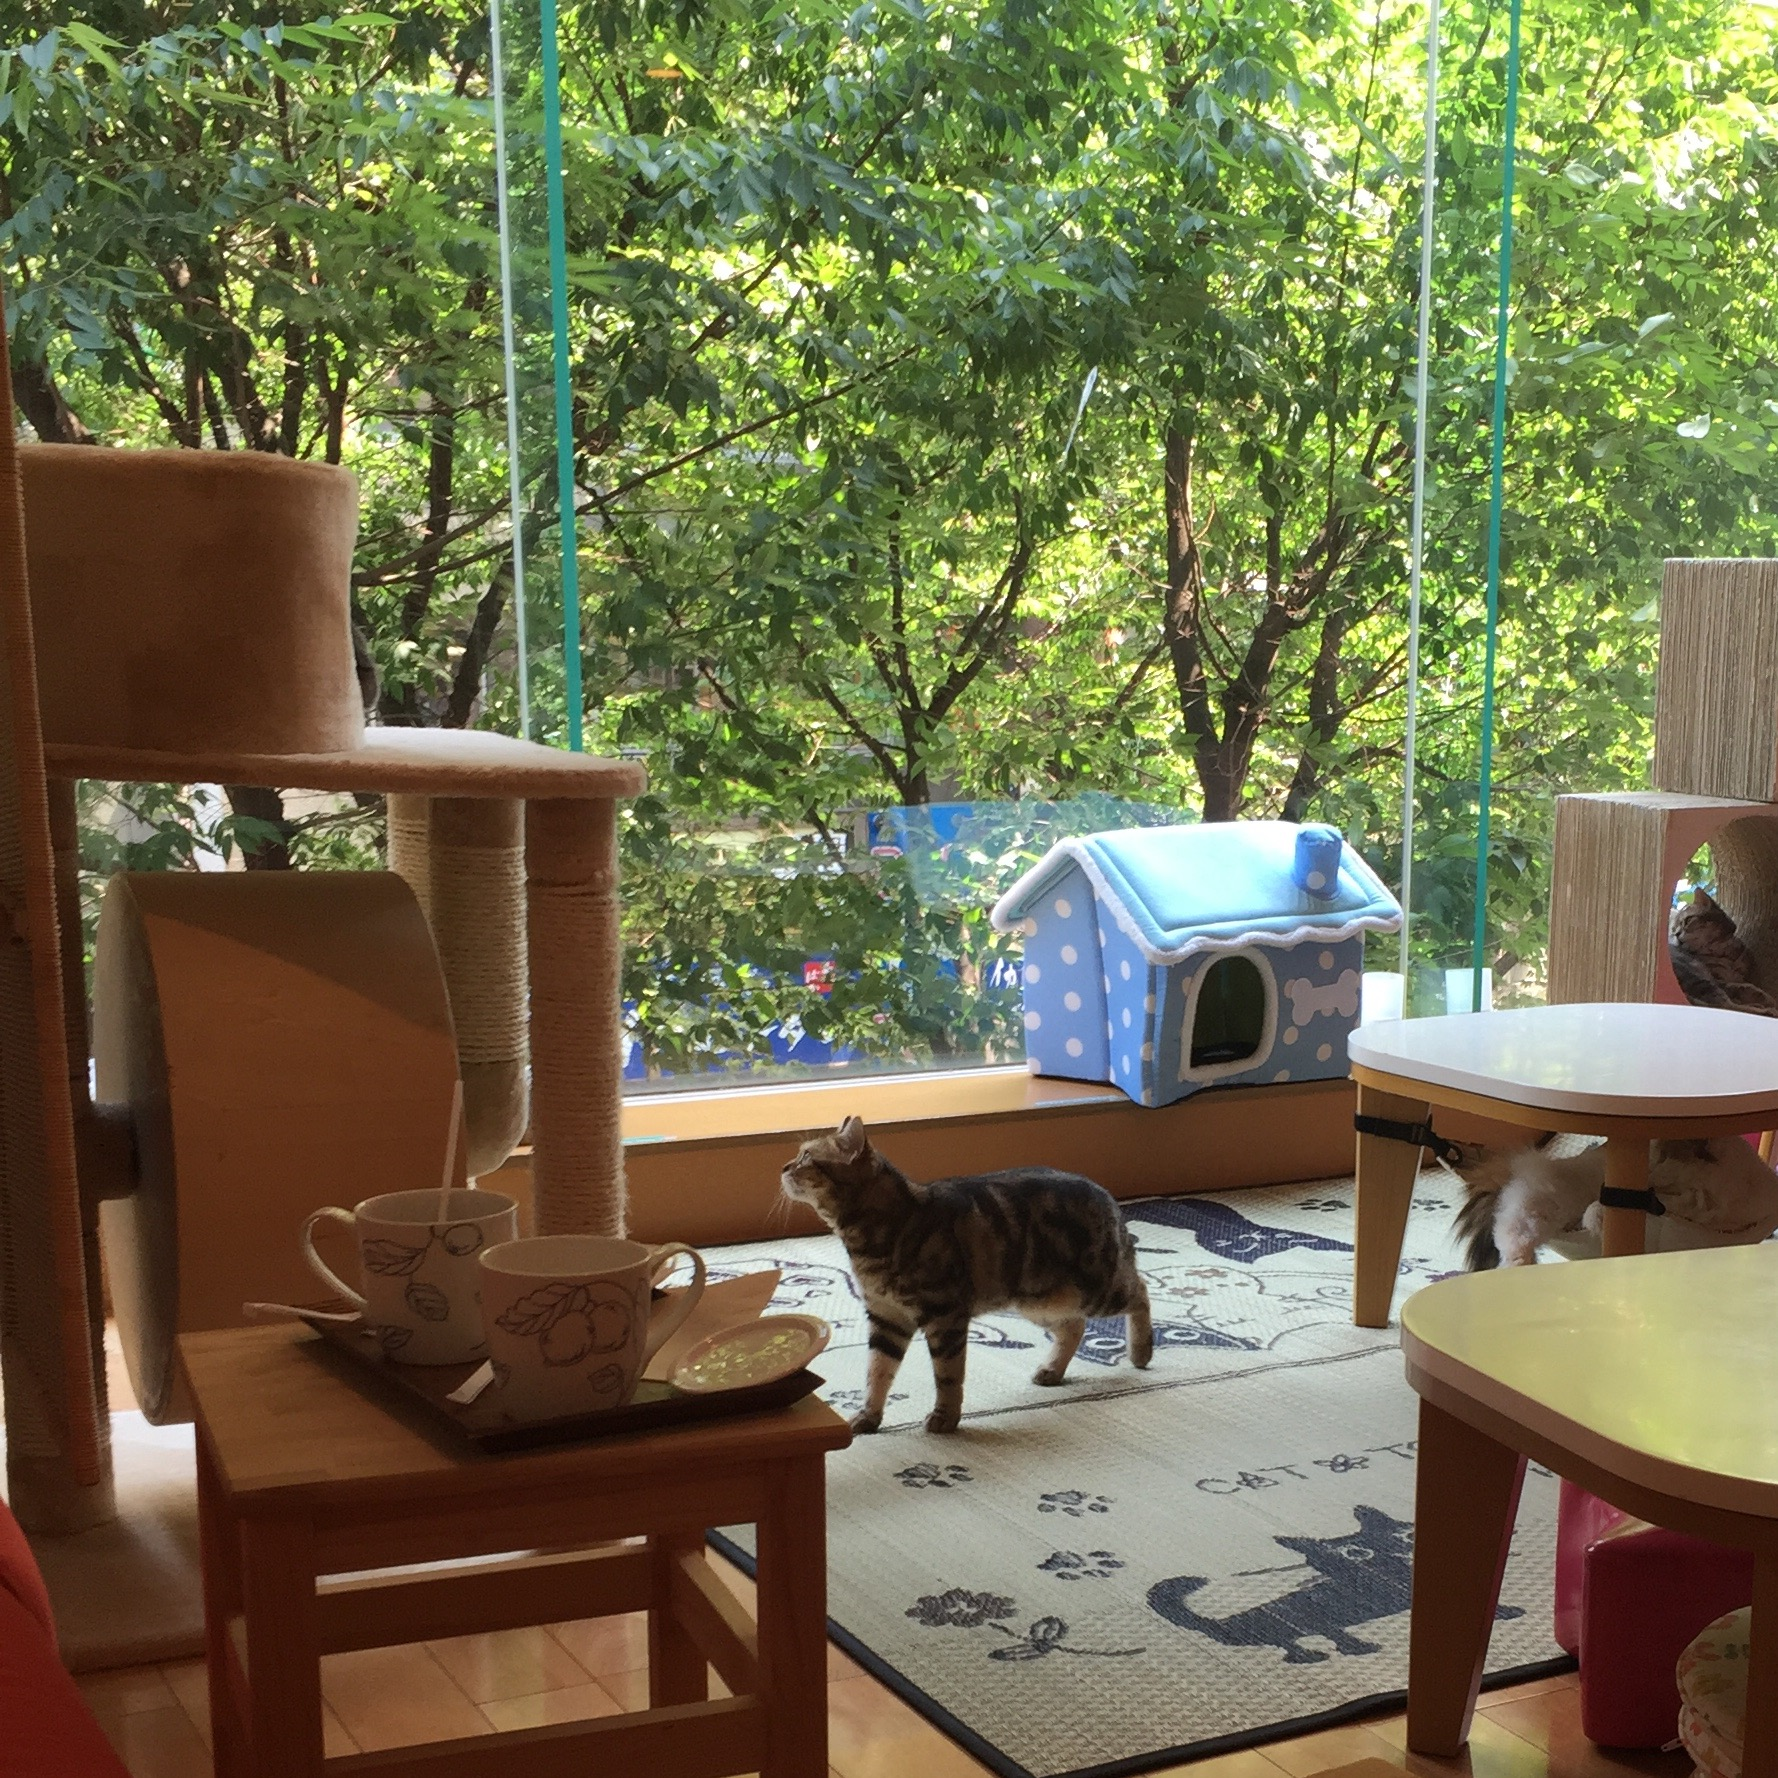 View of the cat cafe from the other side